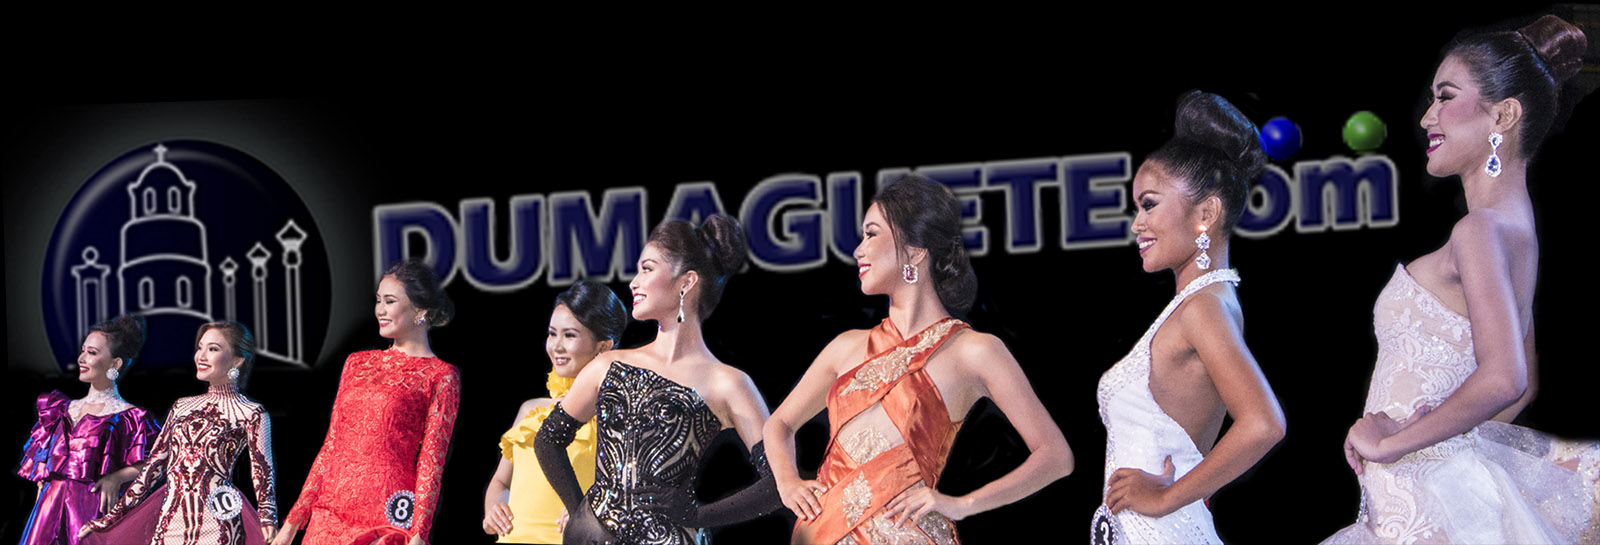 Miss Dumaguete 2017 Coronation Night